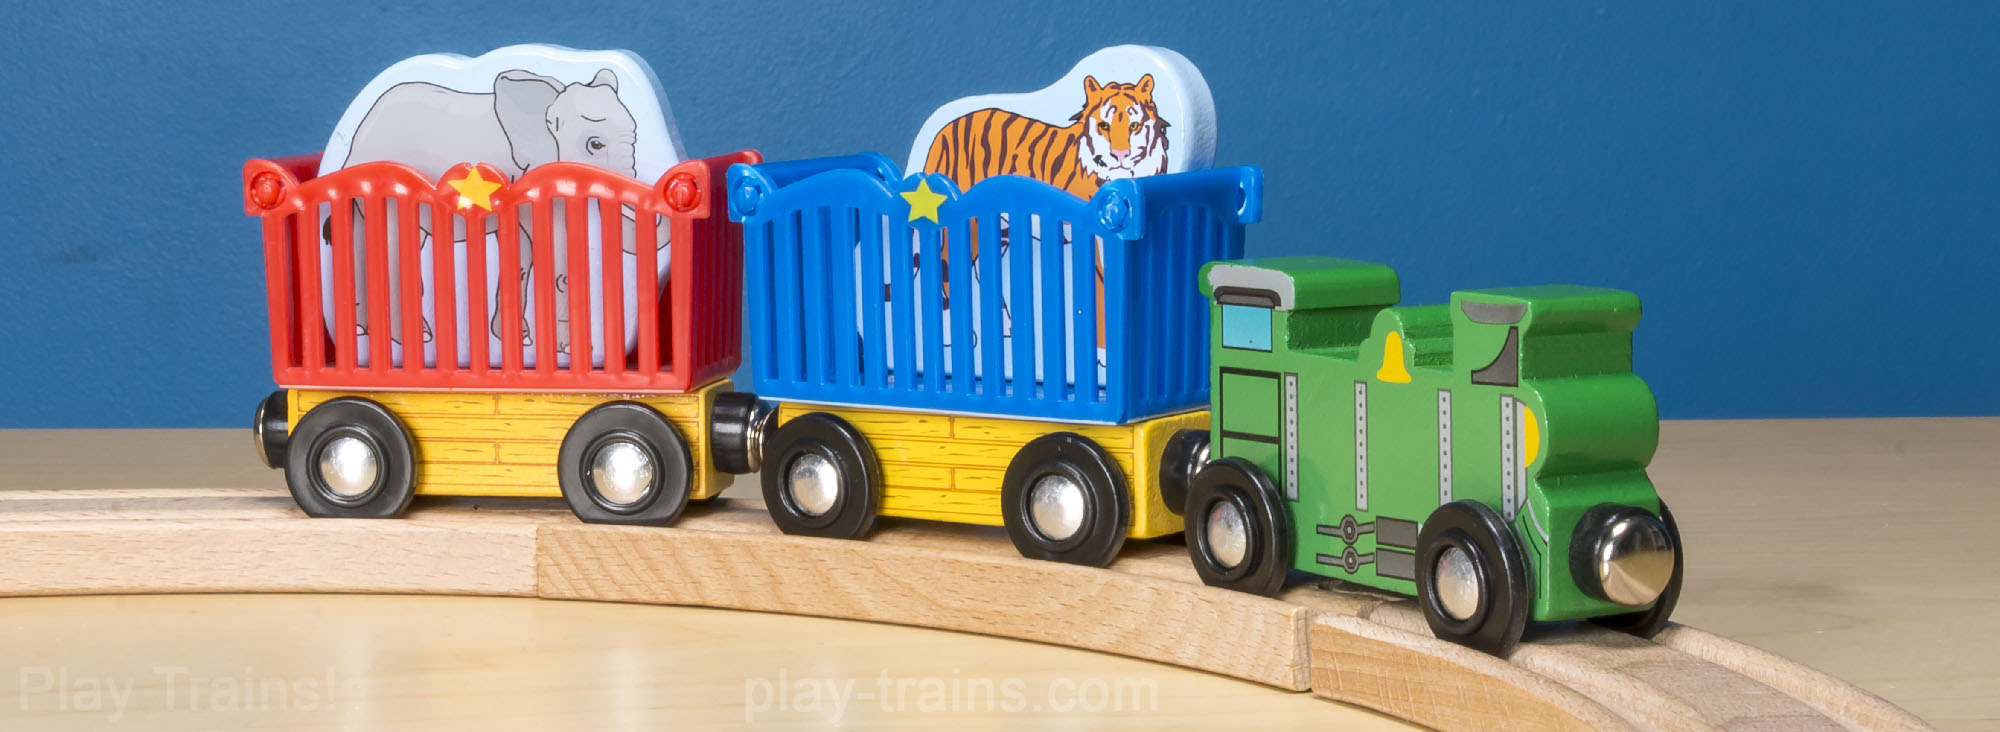 Melissa & Doug Zoo Animal Train Set  -- The Play Trains! Guide to Wooden Train Sets: expert advice on the best wooden train set to buy for your little engineer.